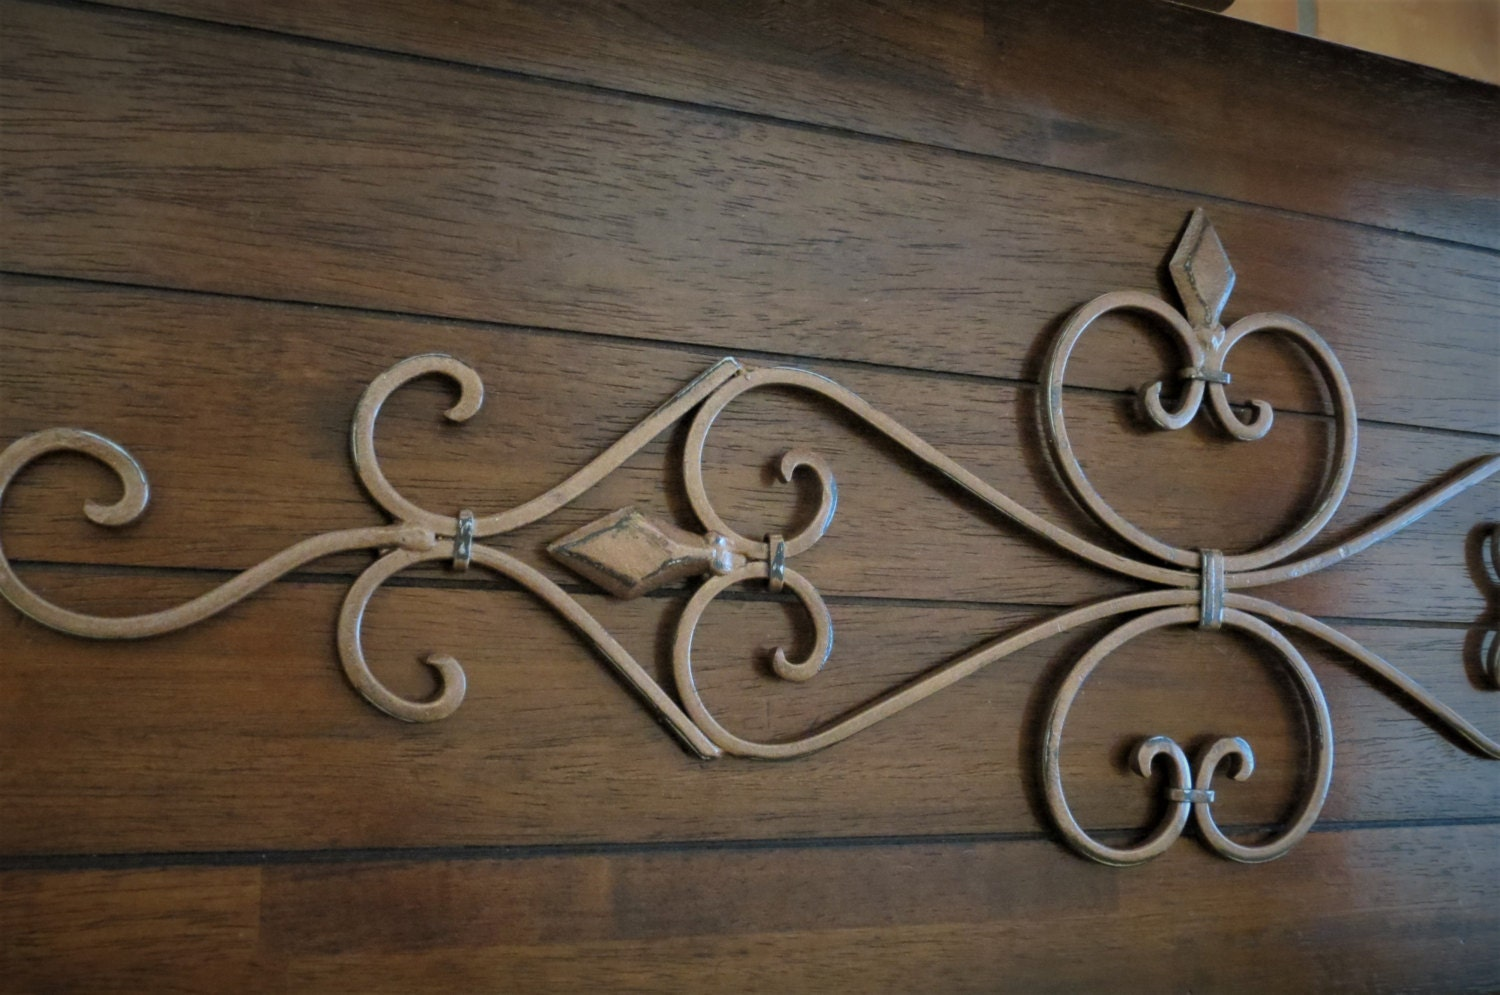 Fleur de Lis Metal Wall Decor / Scrolled Wrought Iron Wall